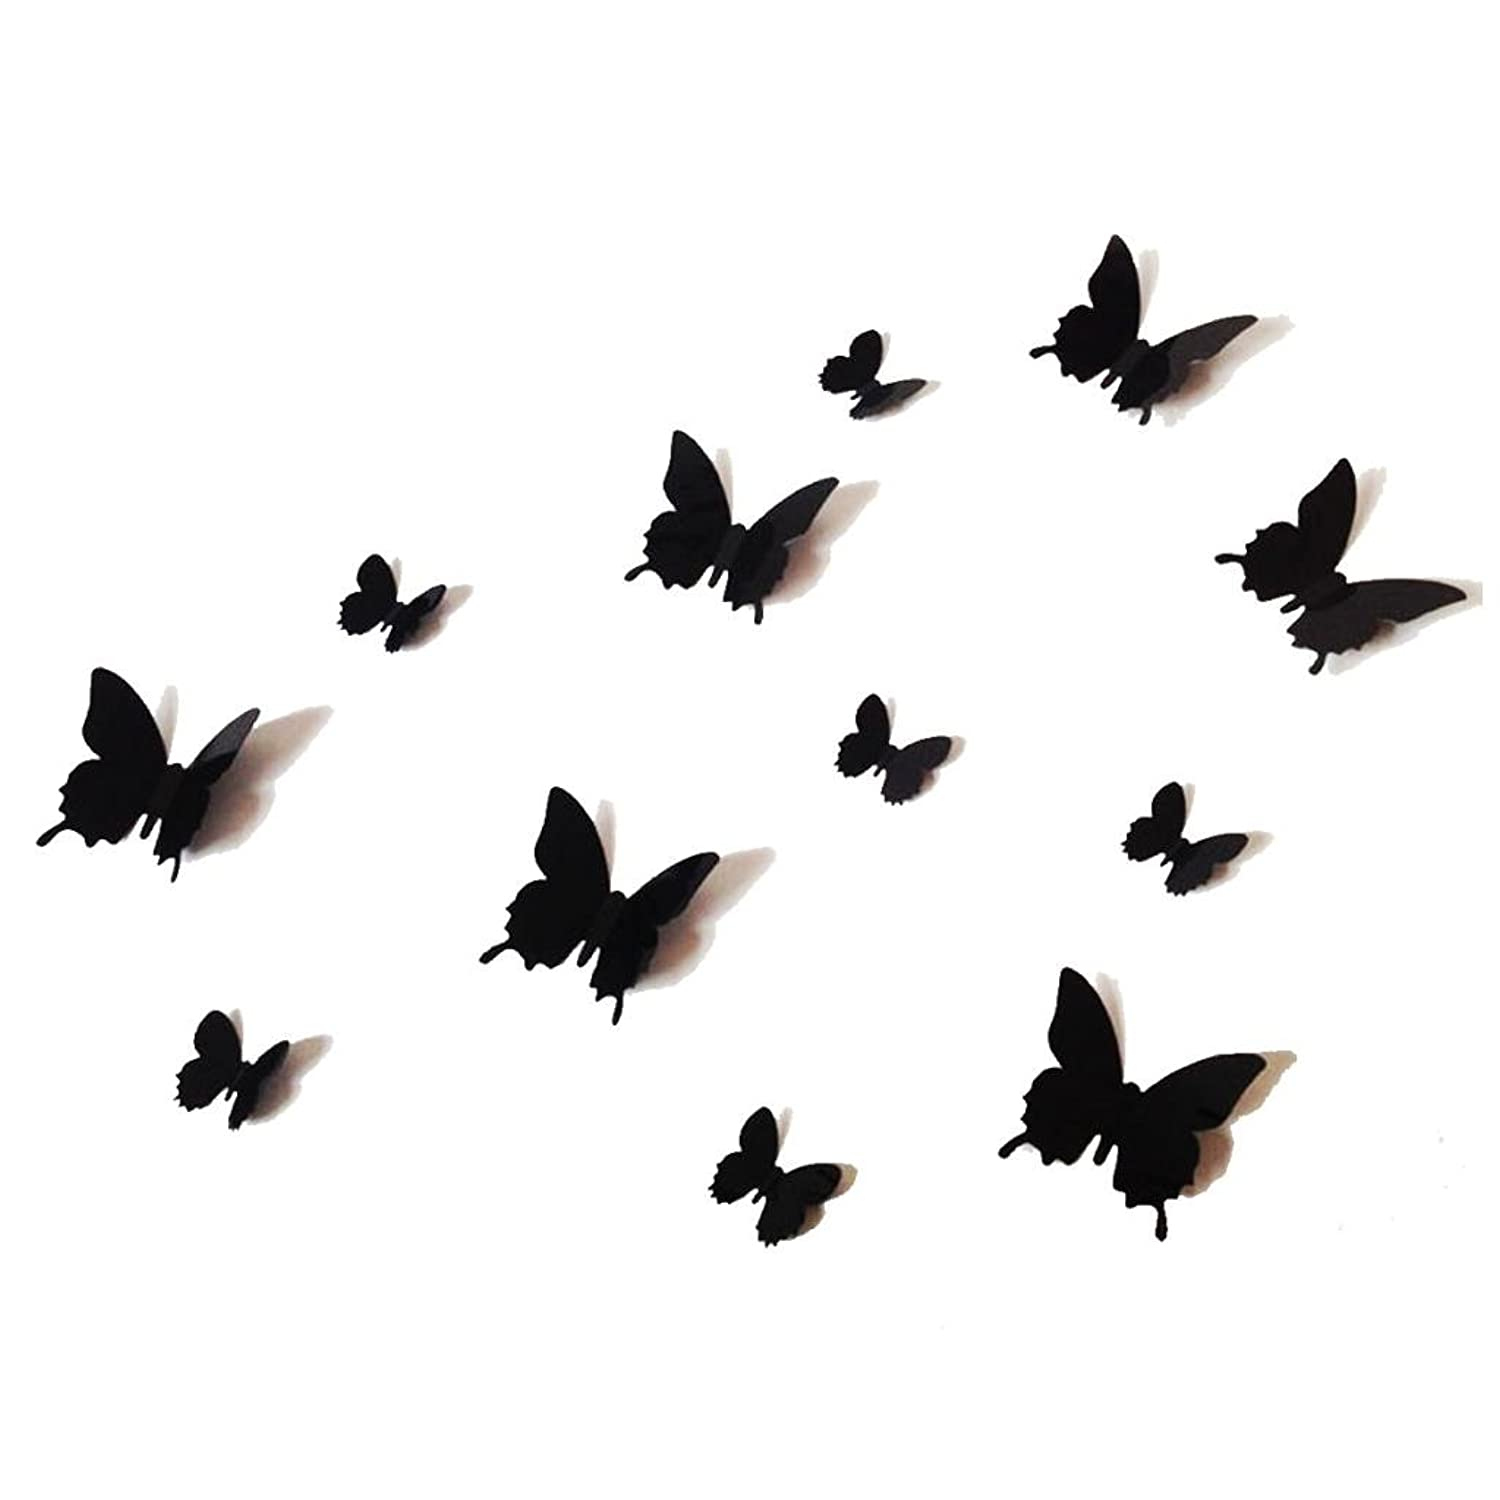 Amazoncom PCS D Black Butterfly Wall Stickers Art Decal PVC - Butterfly wall decals 3d